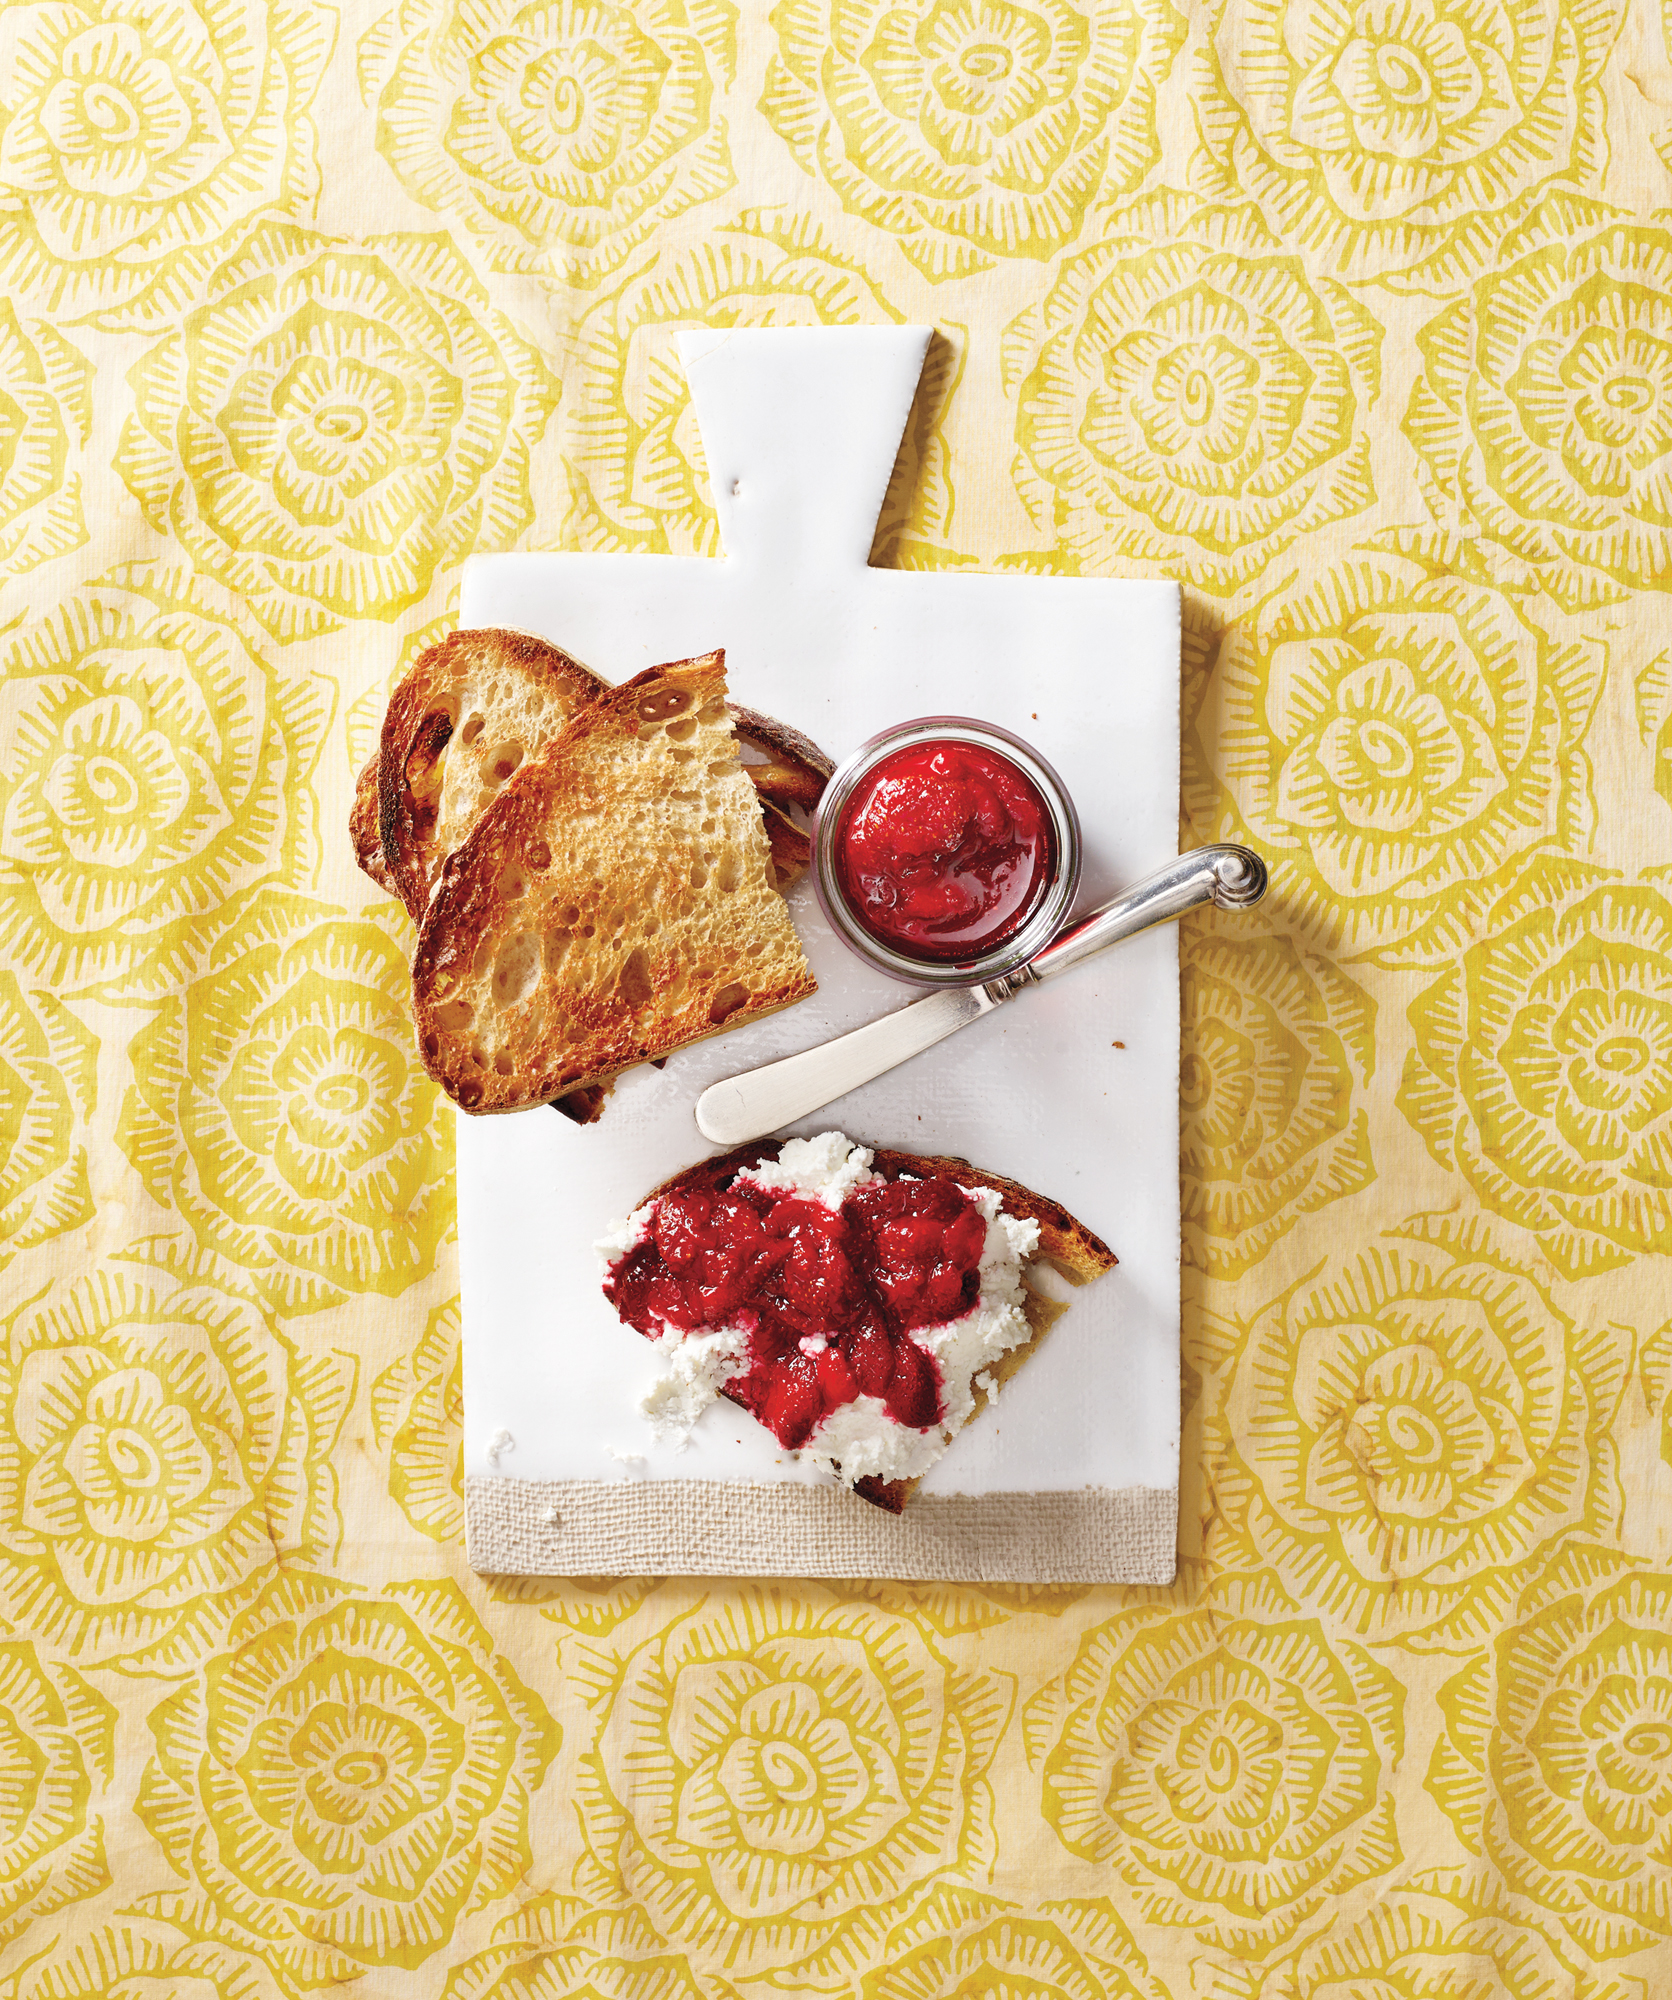 sourdough-toast-strawberry-jam-ricotta